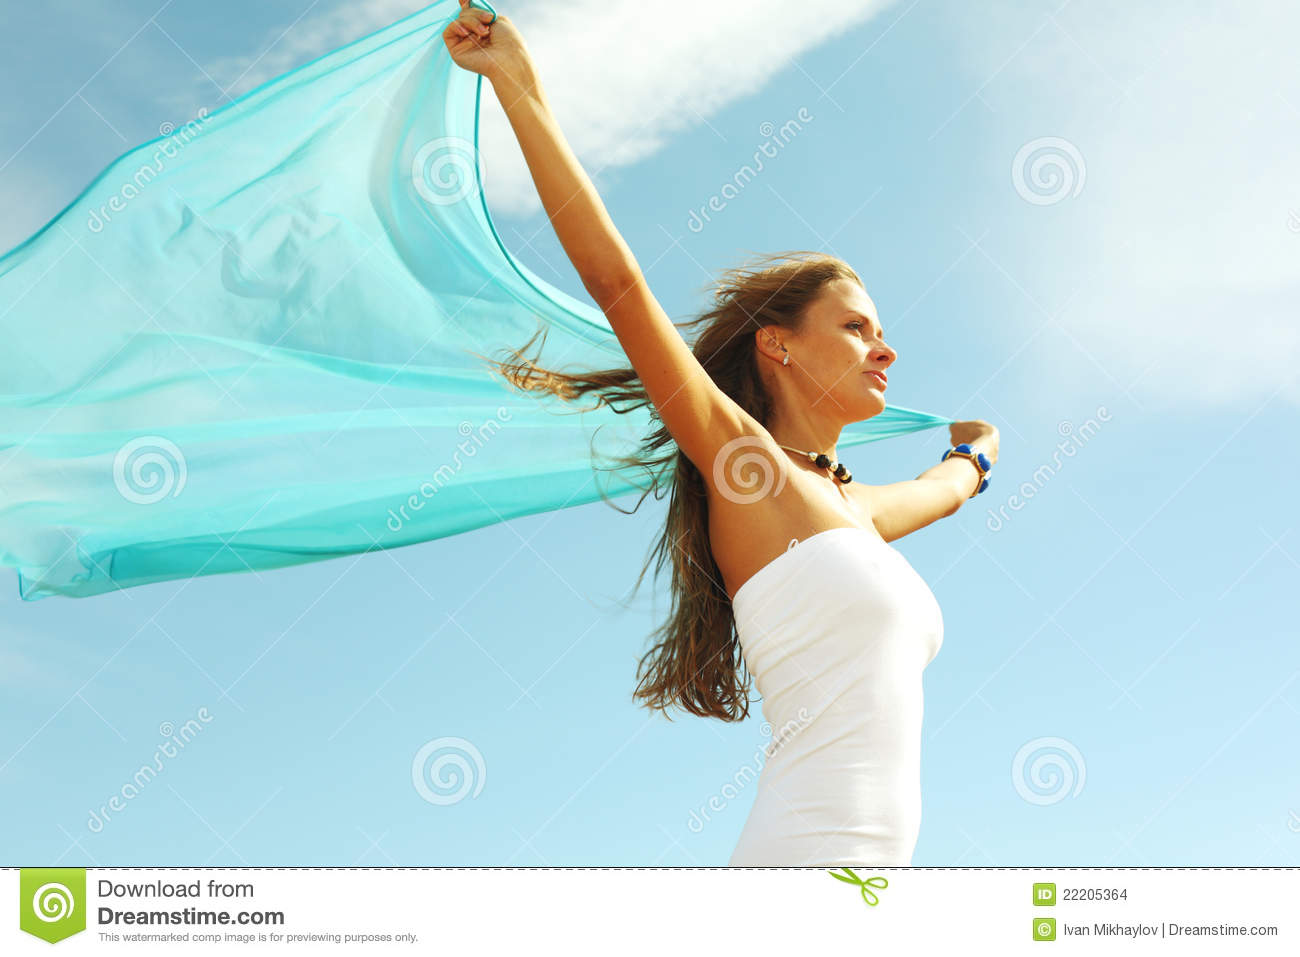 Fly Away Stock Images - Image: 22205364